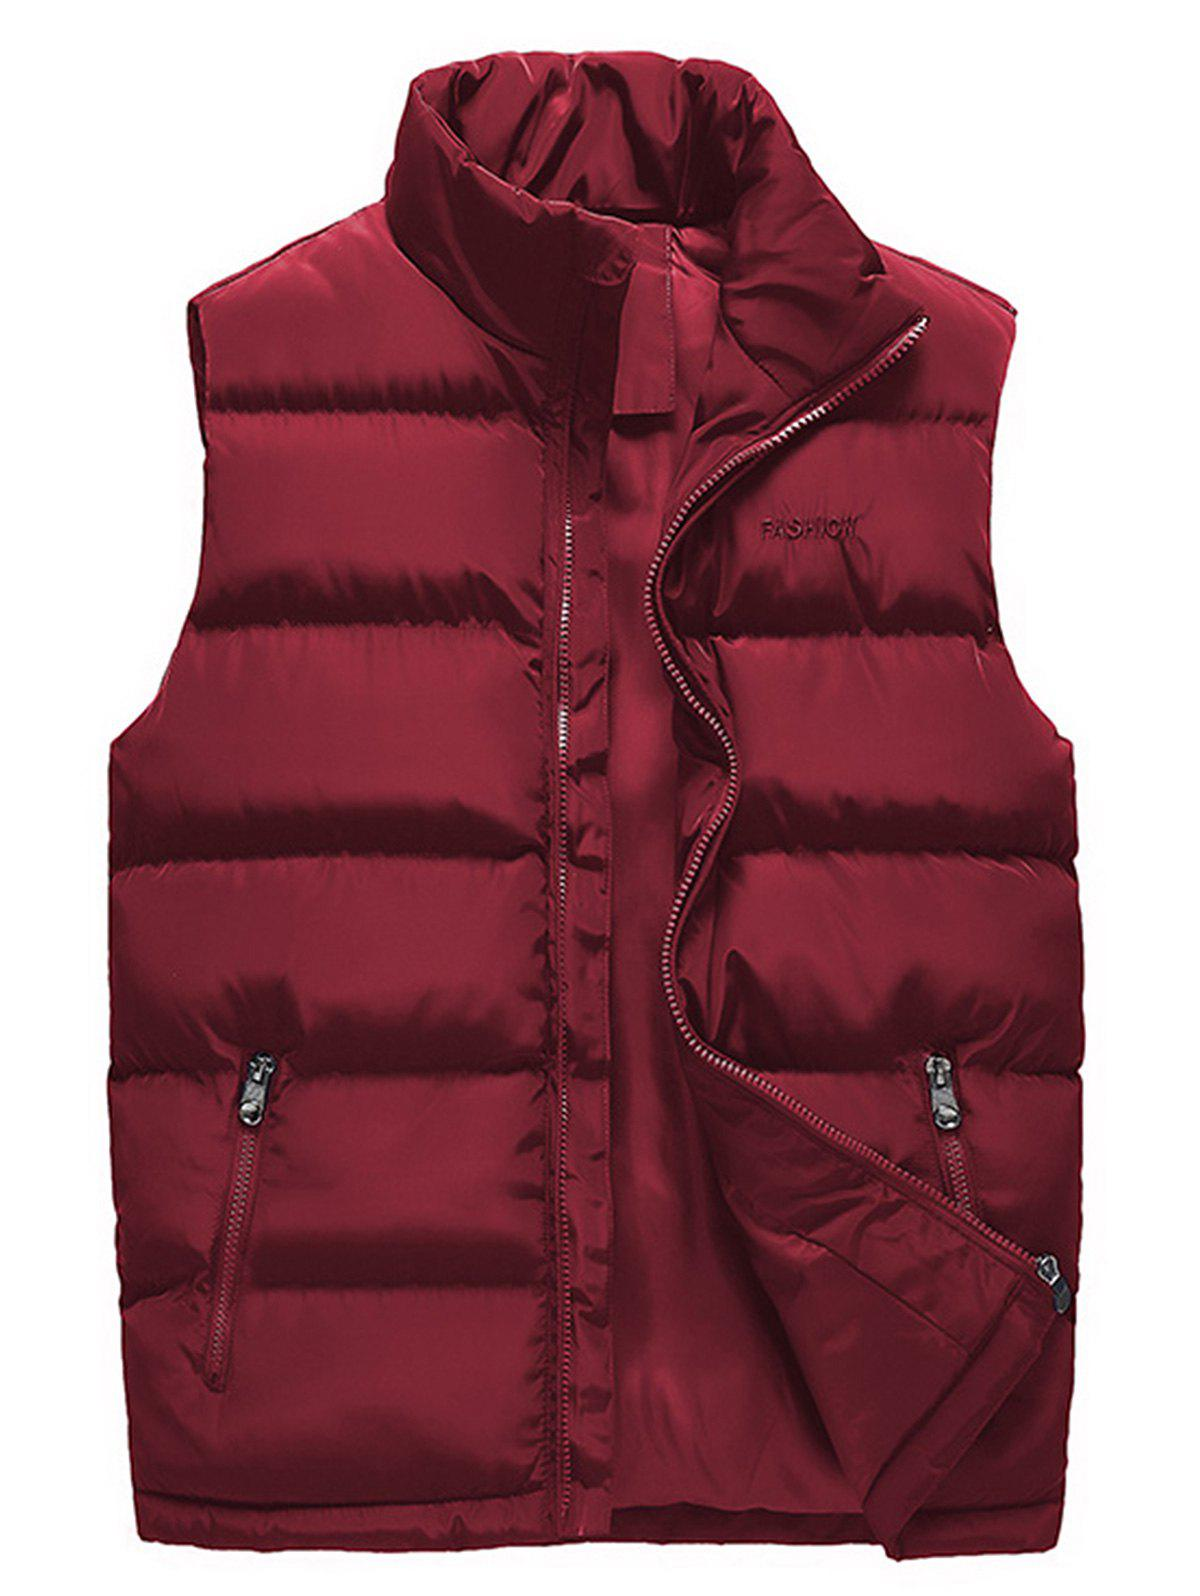 Zip Up - Gilet rembourré brodé - Rouge vineux 2XL